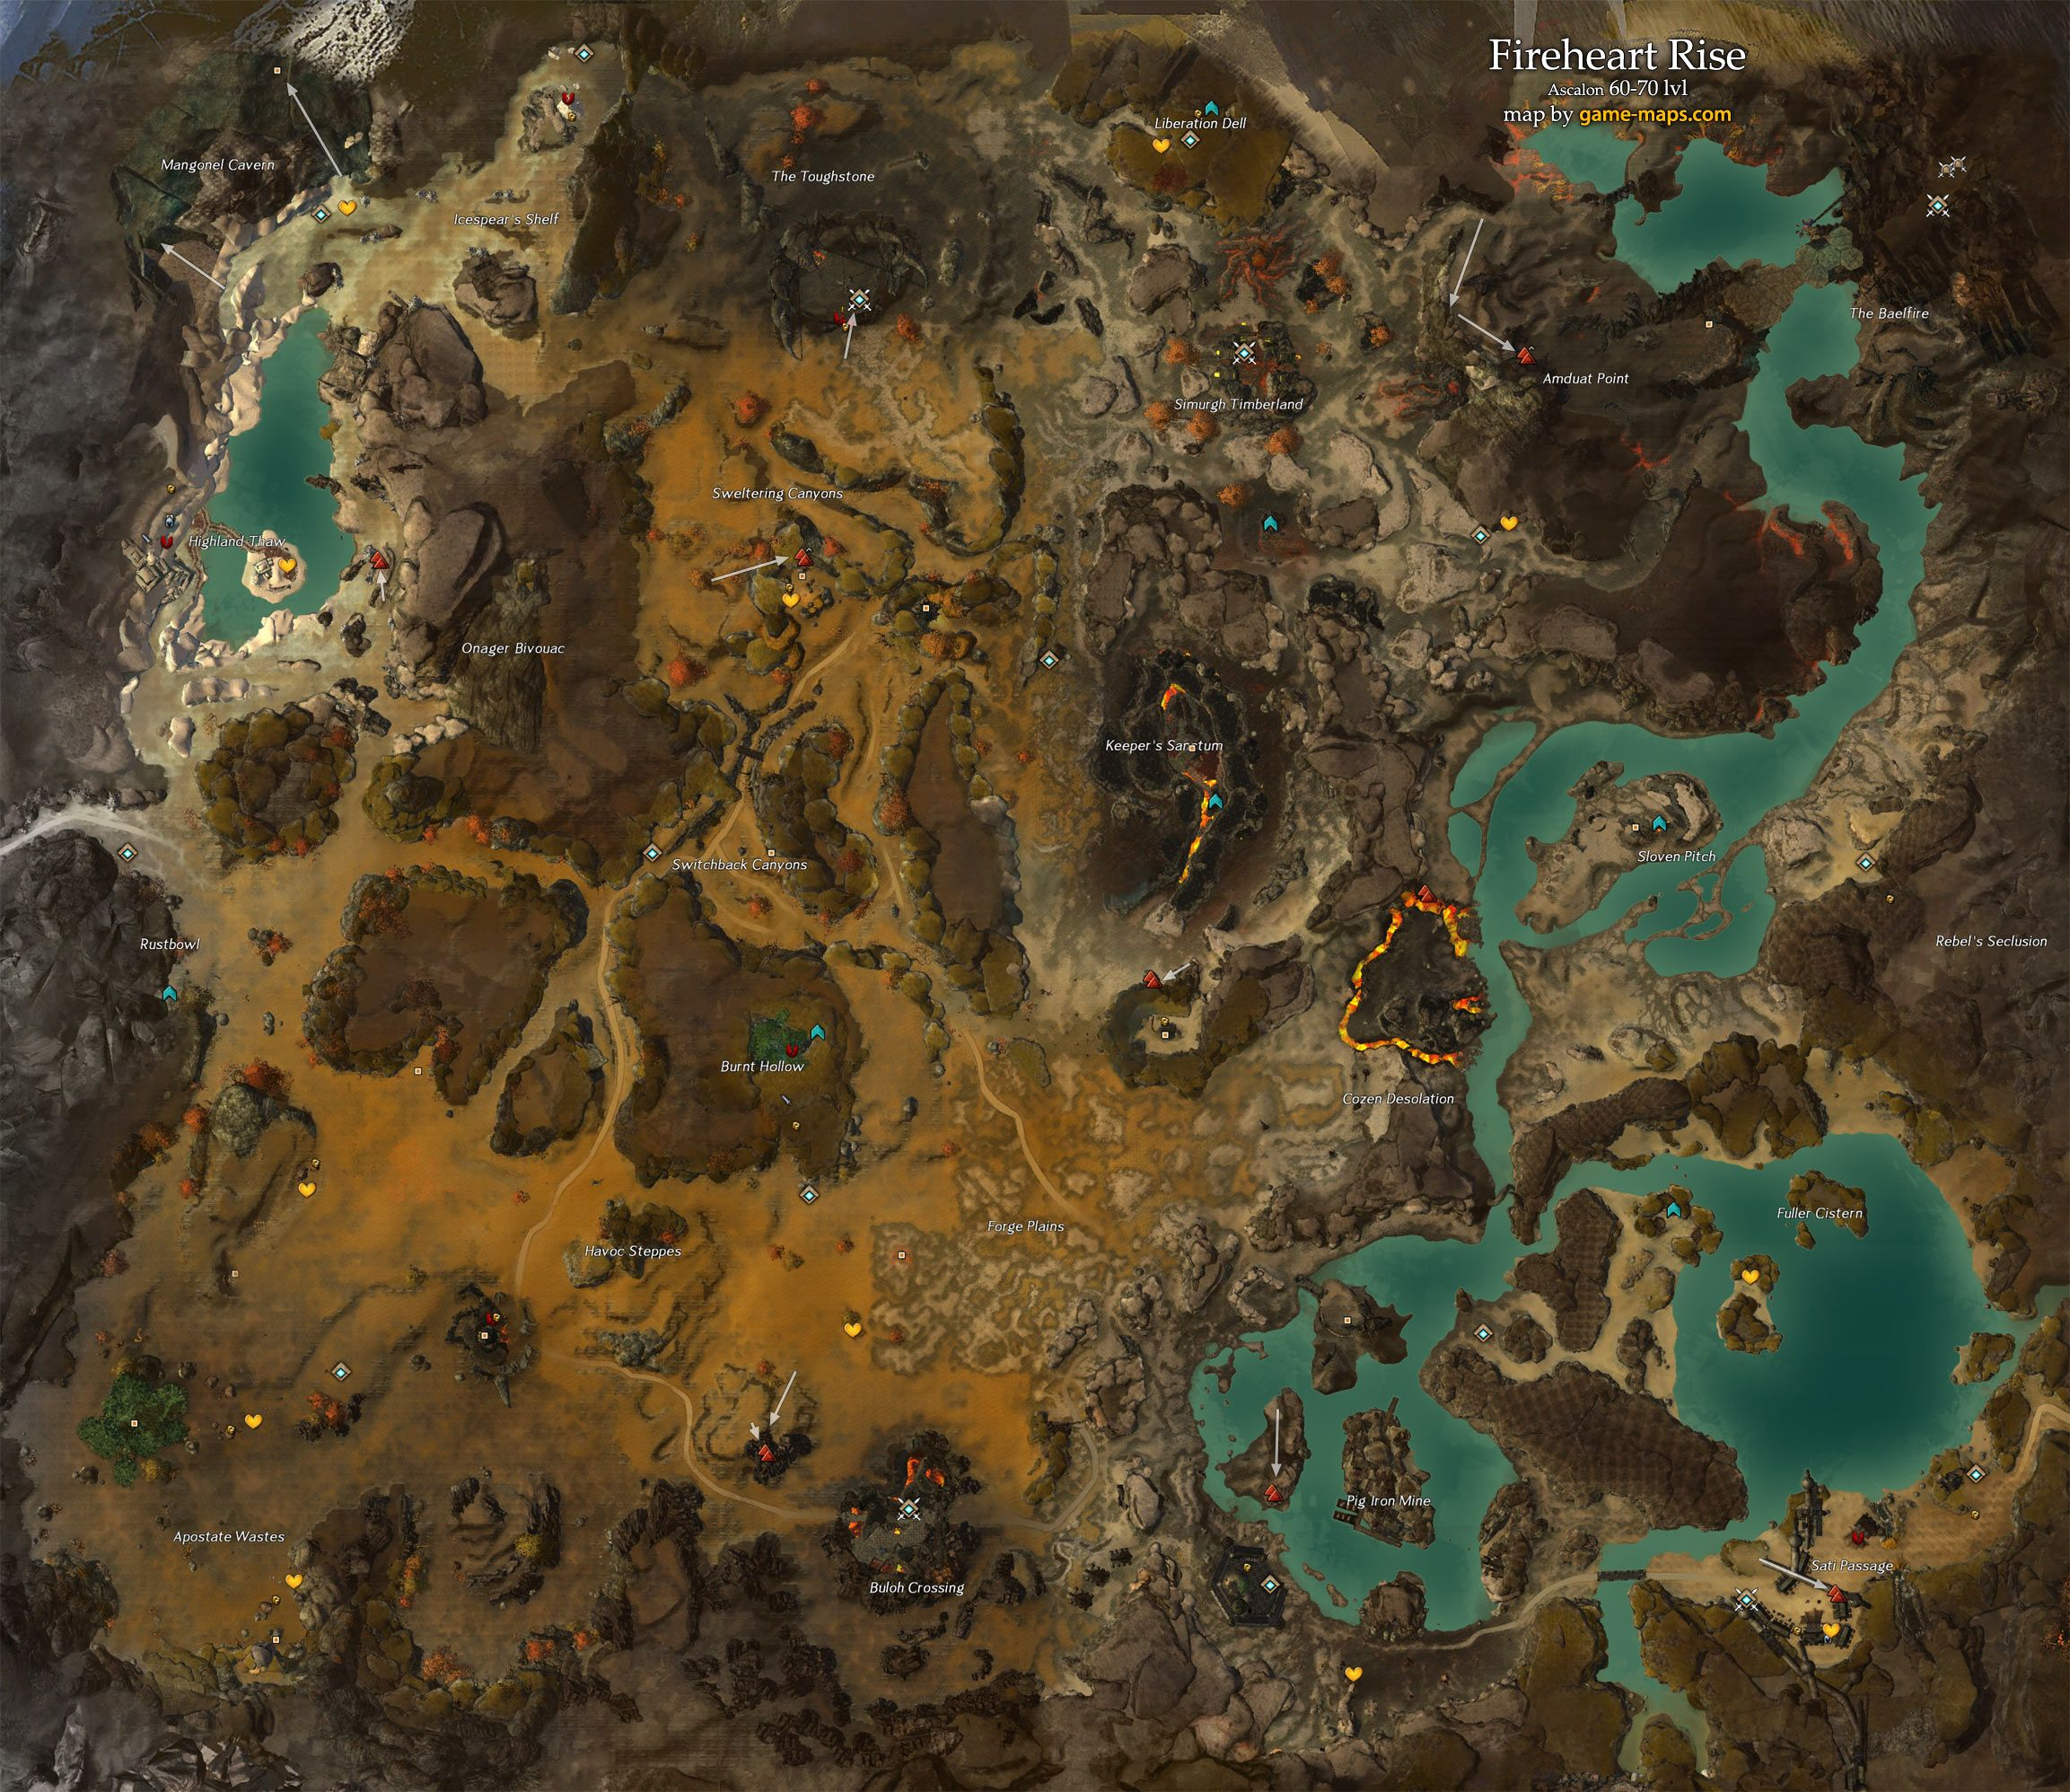 Map of fireheart rise map 60 70 lvl ascalon guild wars 2 world map of fireheart rise map 60 70 lvl ascalon guild wars 2 gumiabroncs Gallery